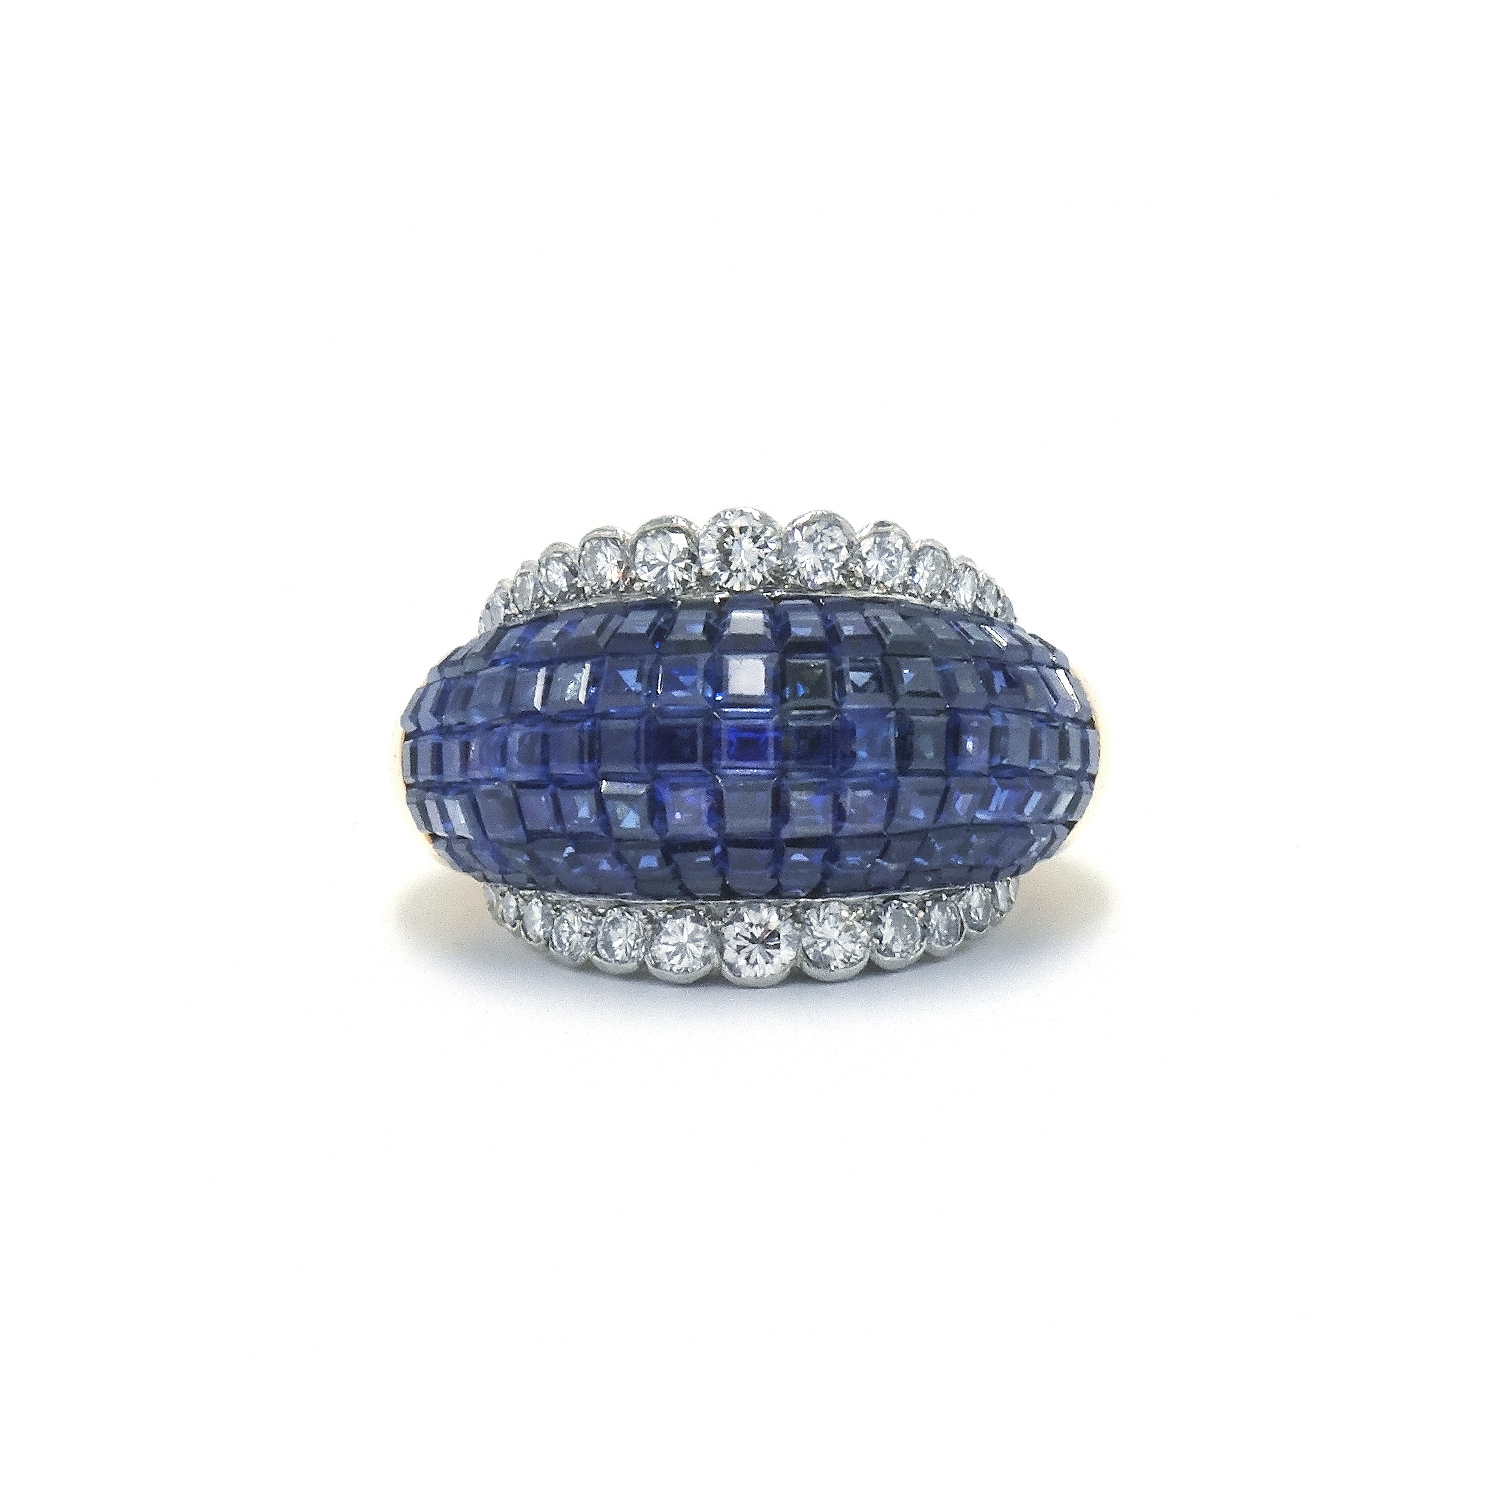 1950s Invisibly Set Sapphire and Diamond Ring by Van Cleef & Arpels Style R-36157-FL-0-0